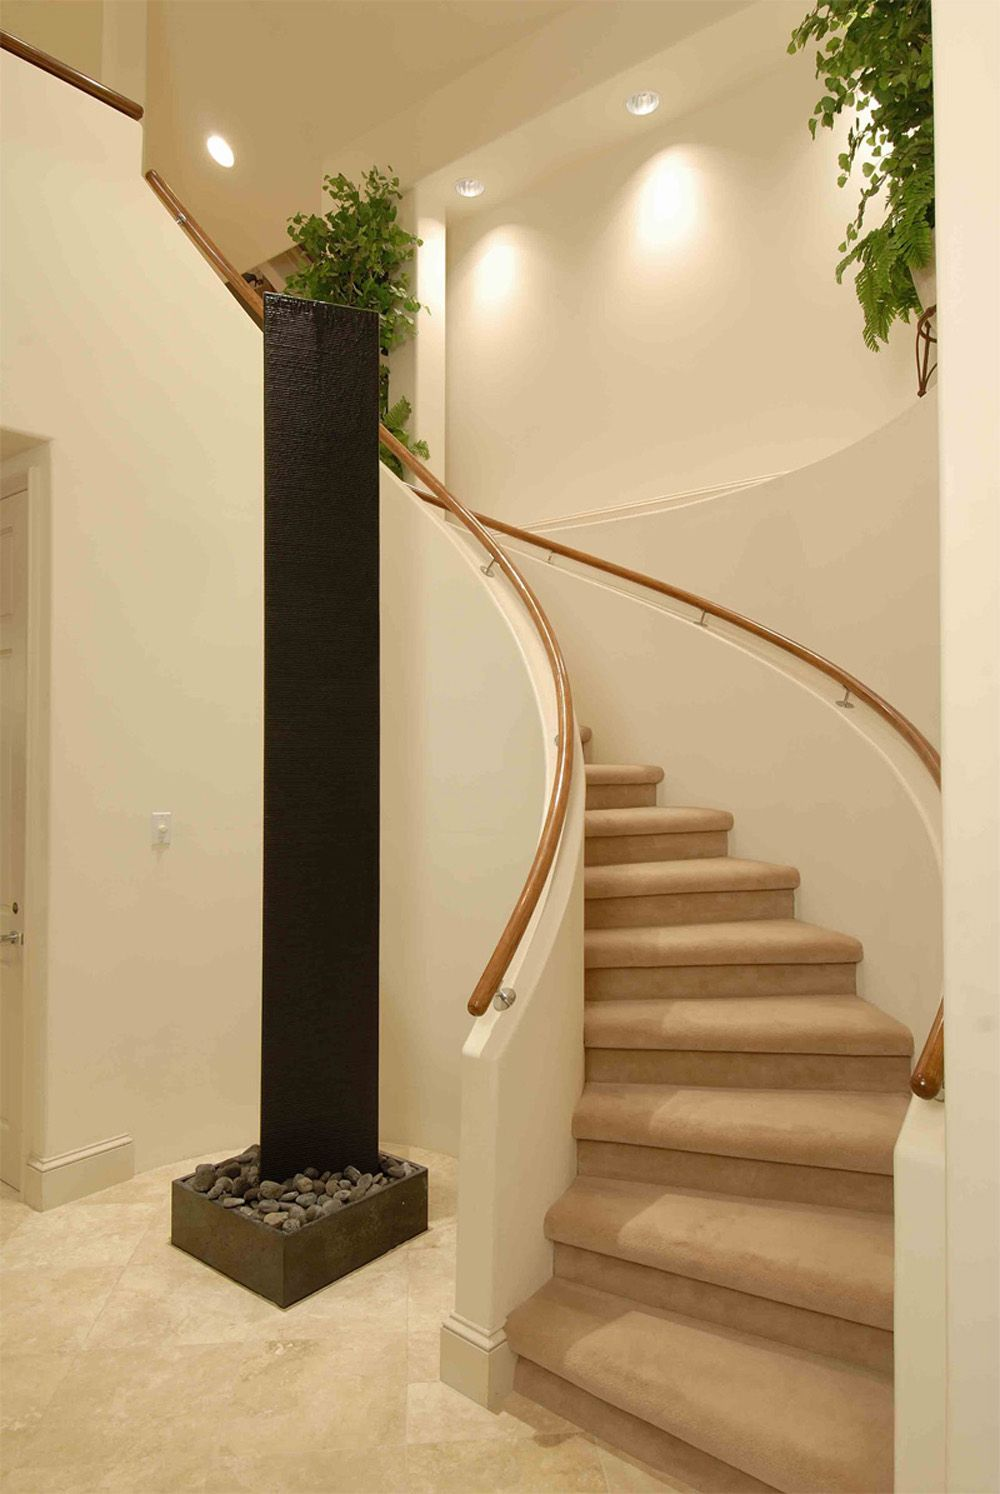 House Interior Design Pictures Kerala Stairs House Free Home Kerala House Interior Design